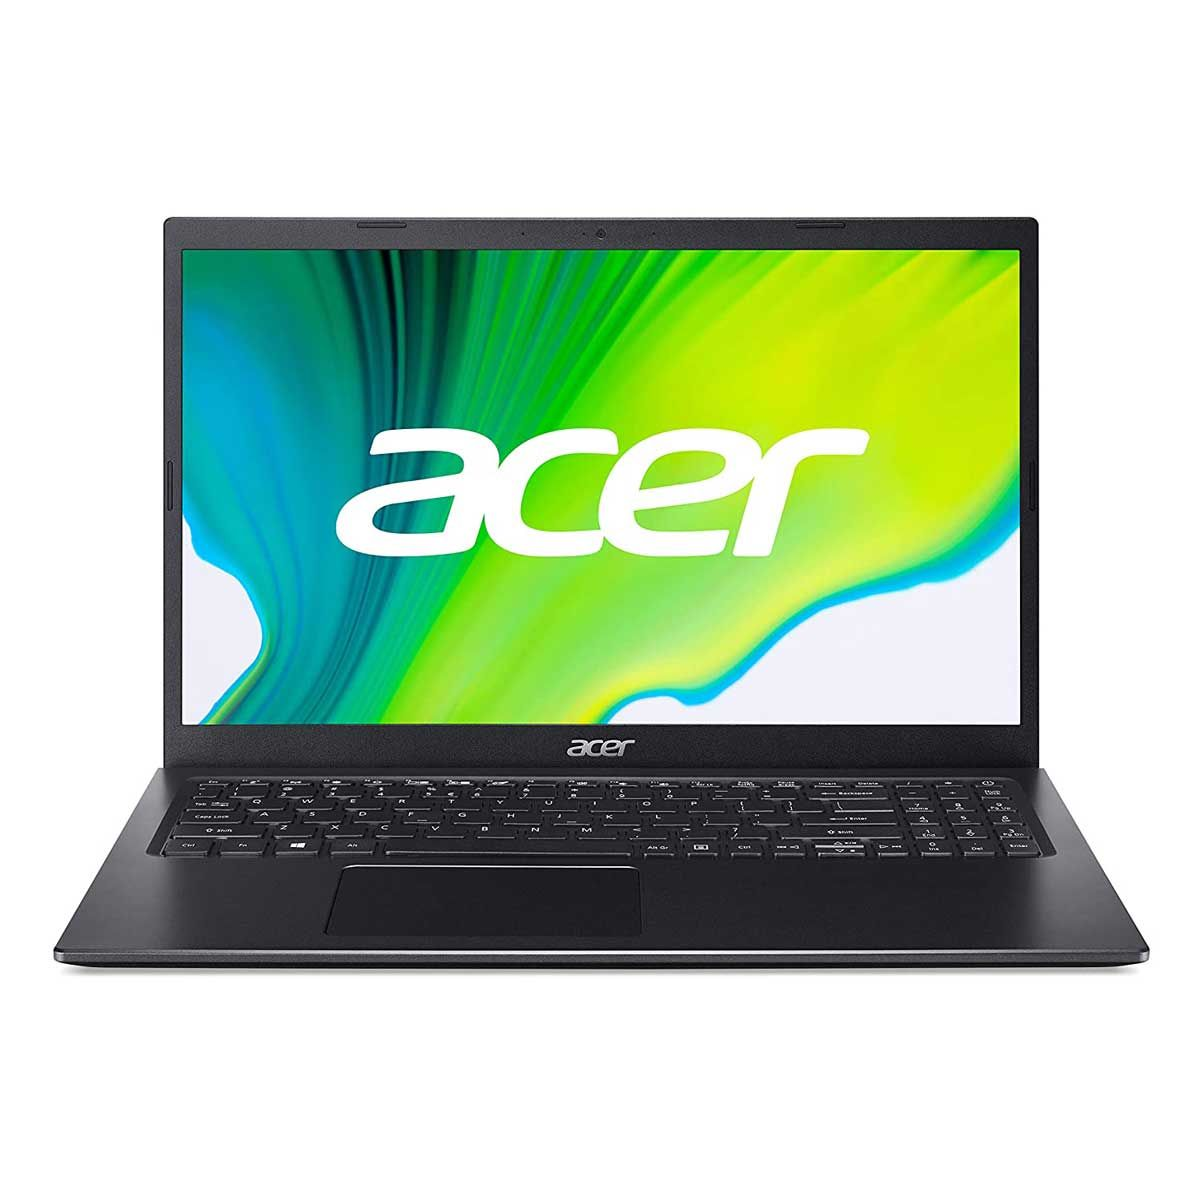 Acer Aspire 5 Thin And Light